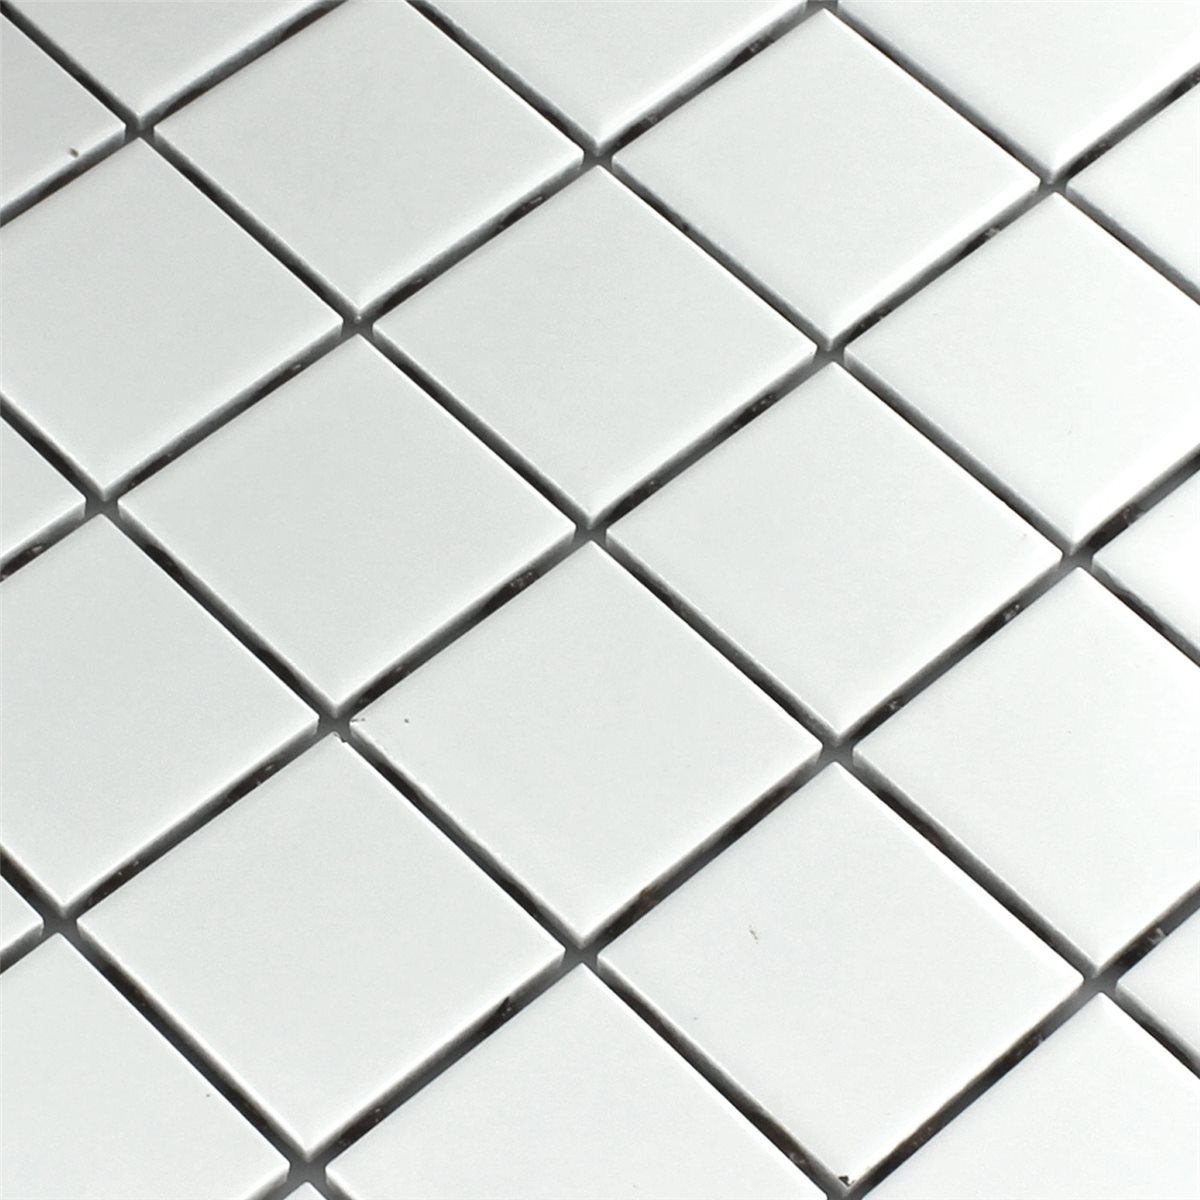 Ceramic mosaic tiles white matt 48x48x6mm ho24163m mosaic tiles ceramic white mat 48x48x6mm dailygadgetfo Image collections